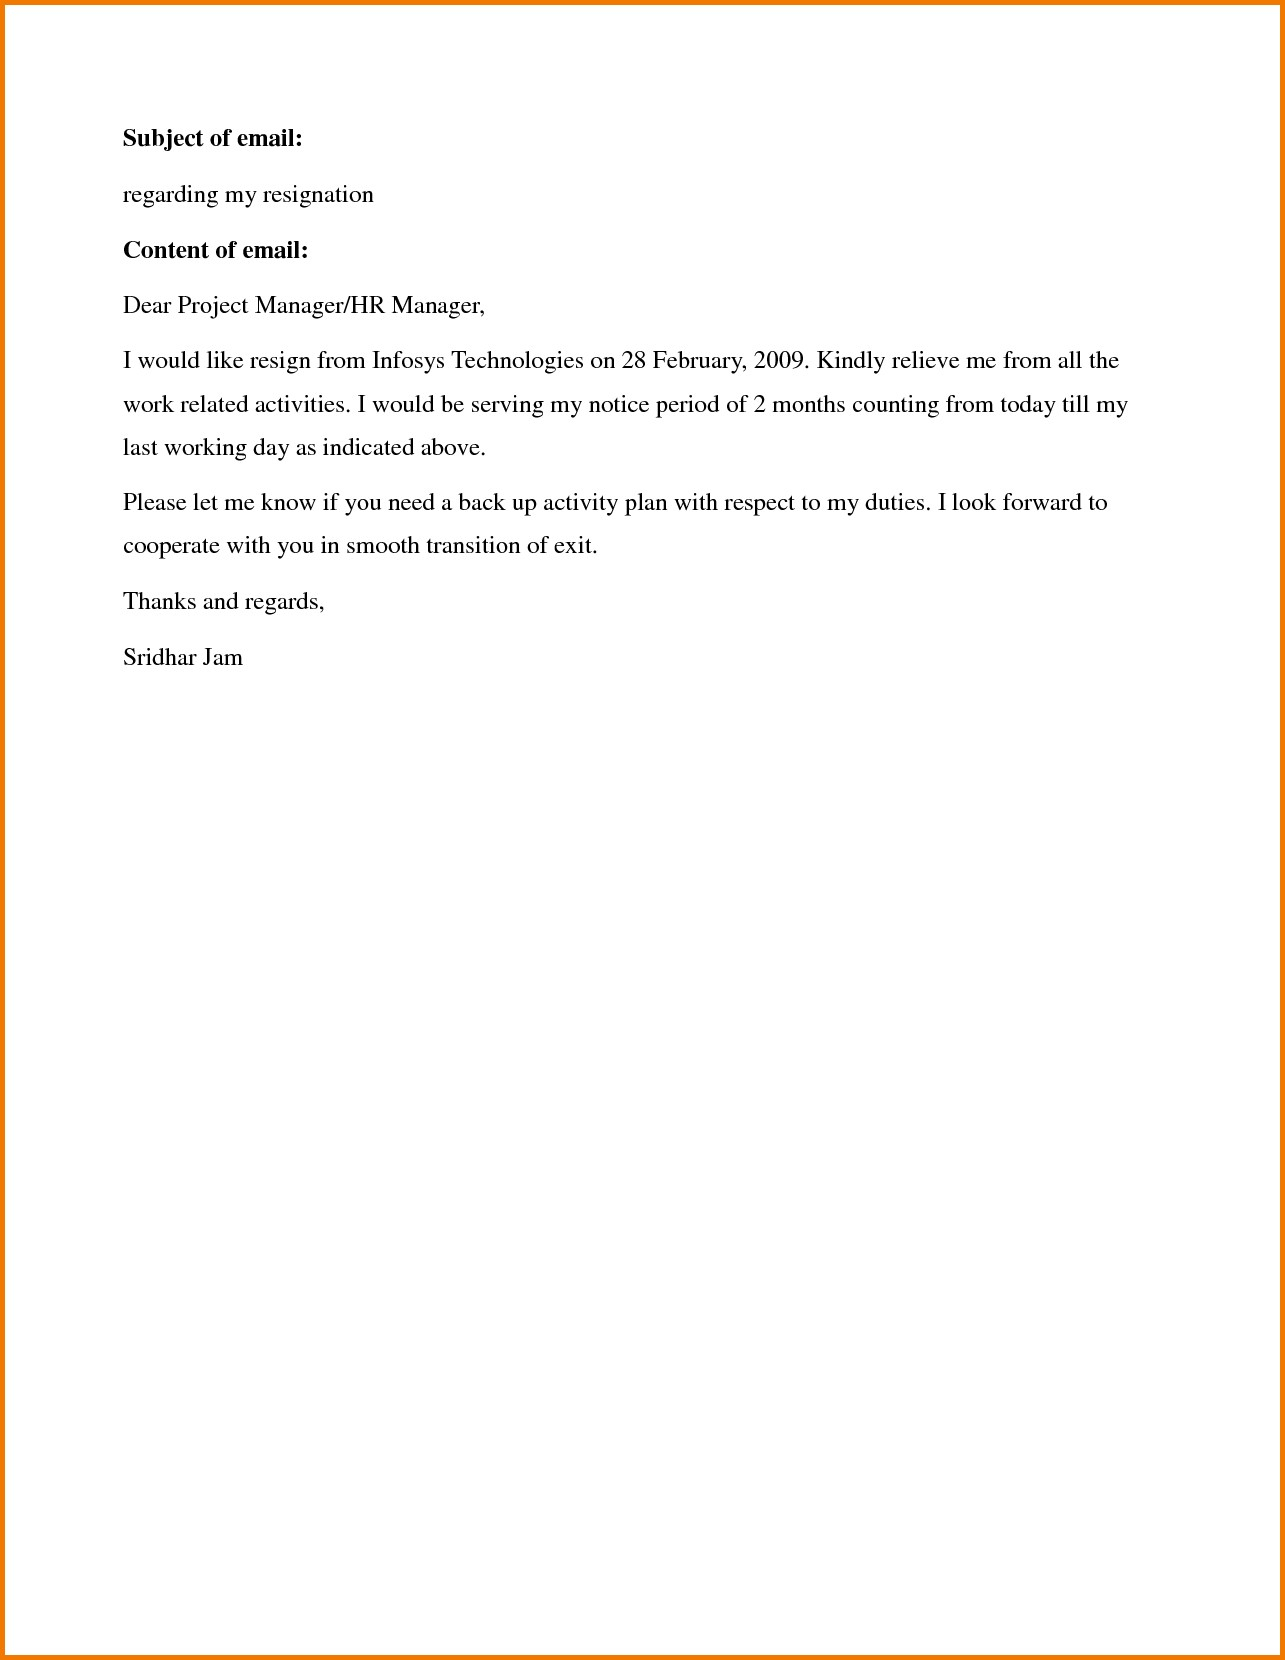 Lodger Eviction Letter Template - Outstanding Eviction Letter Template Uk Administrative